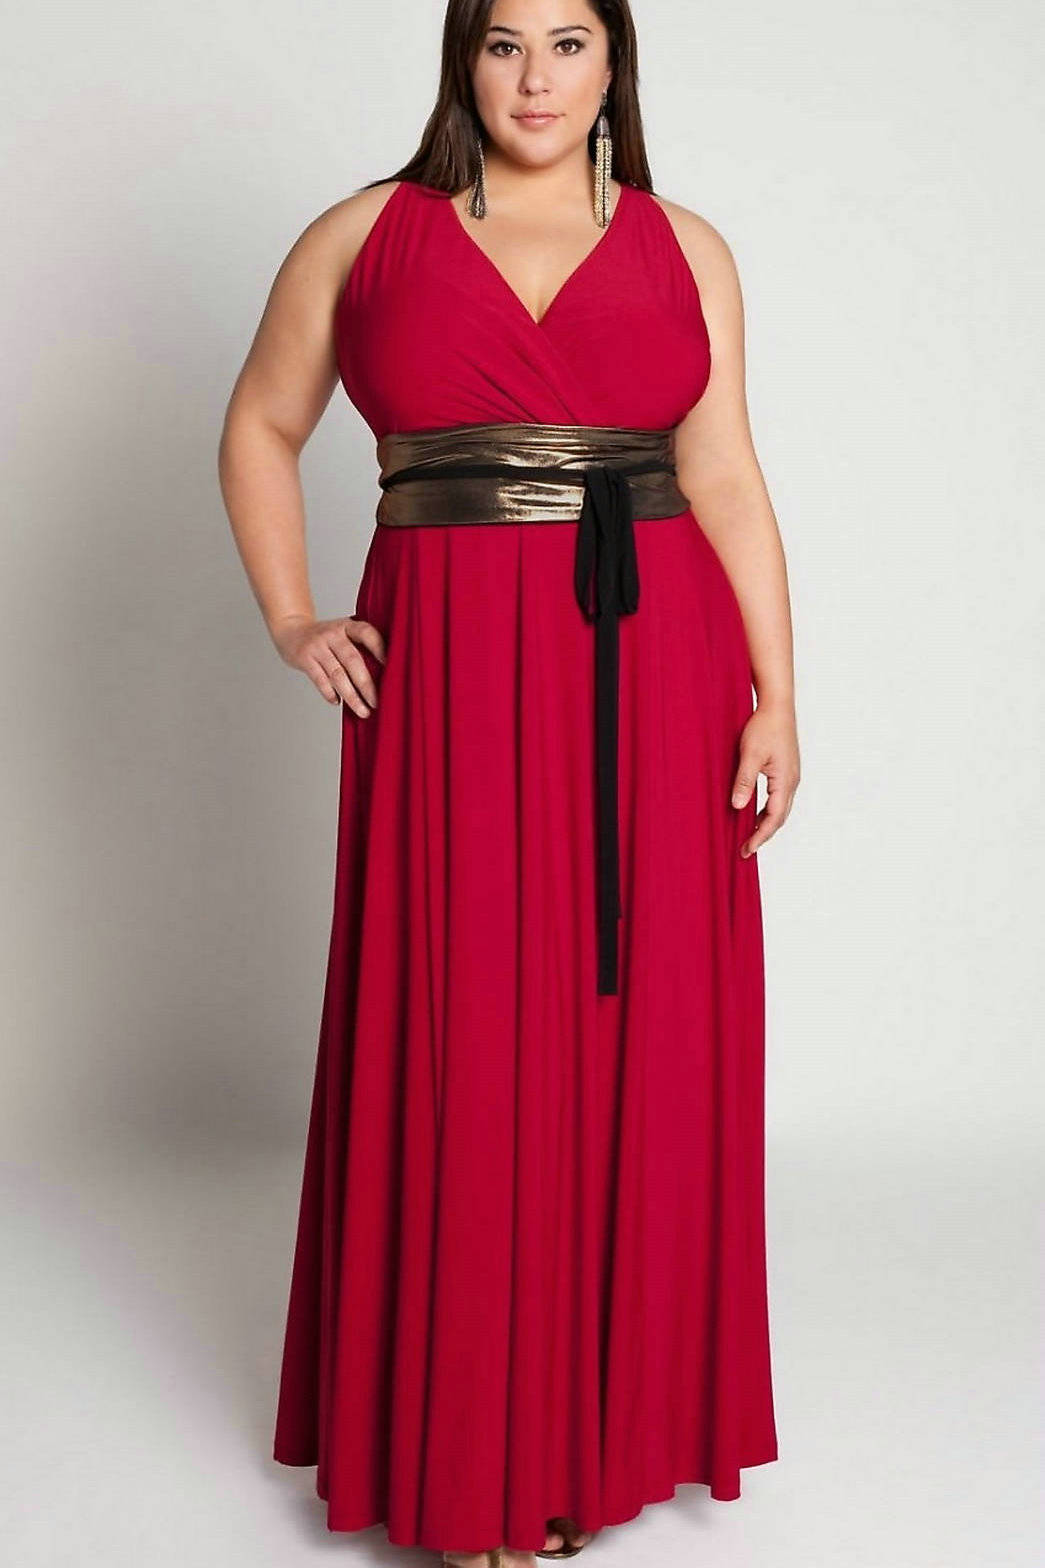 Jcpenney Plus Size Formal Dresses Boutique Prom Dresses